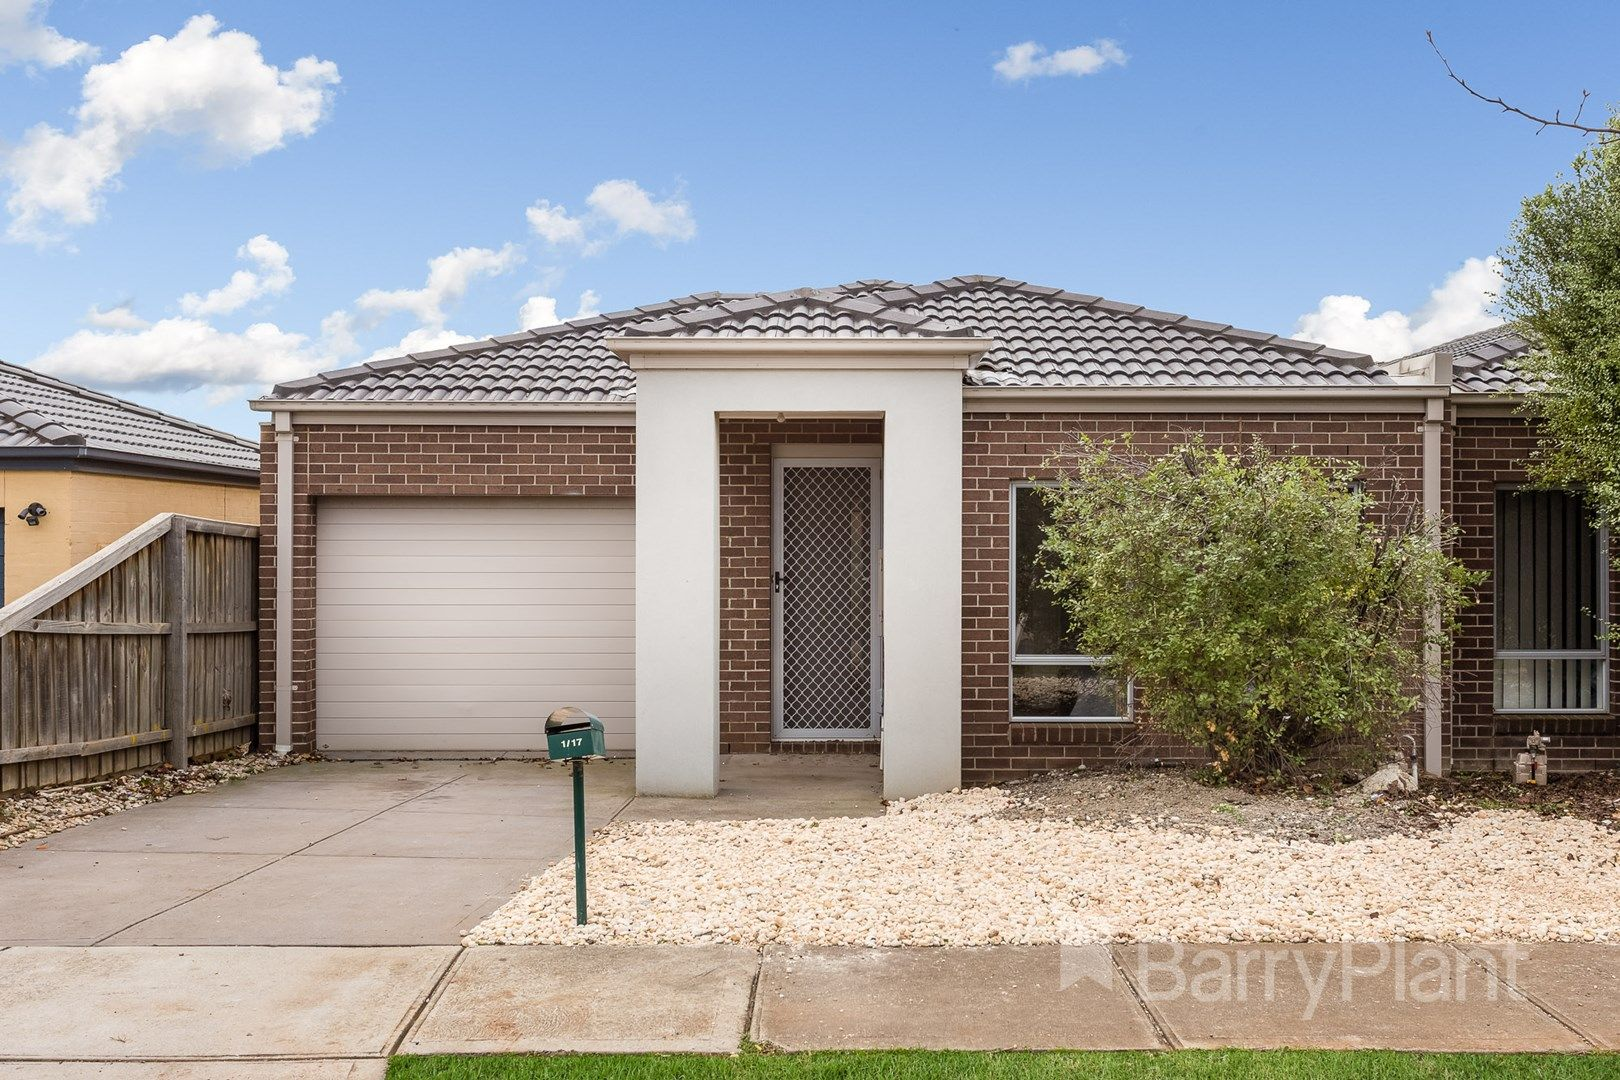 1/17 Toledo Crescent, Point Cook VIC 3030, Image 0